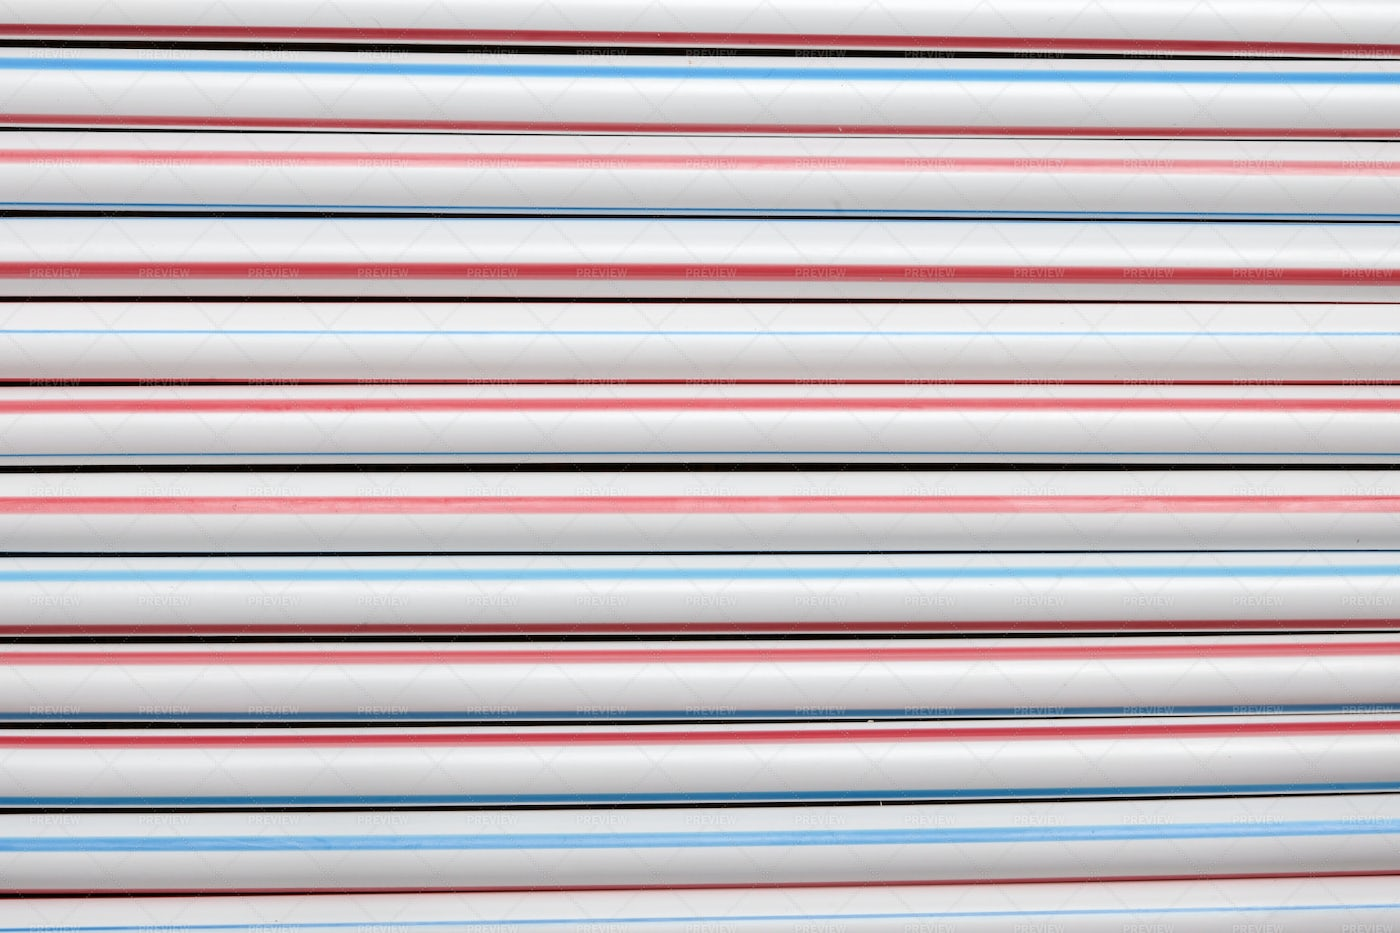 Colorful  Straws As A Background: Stock Photos